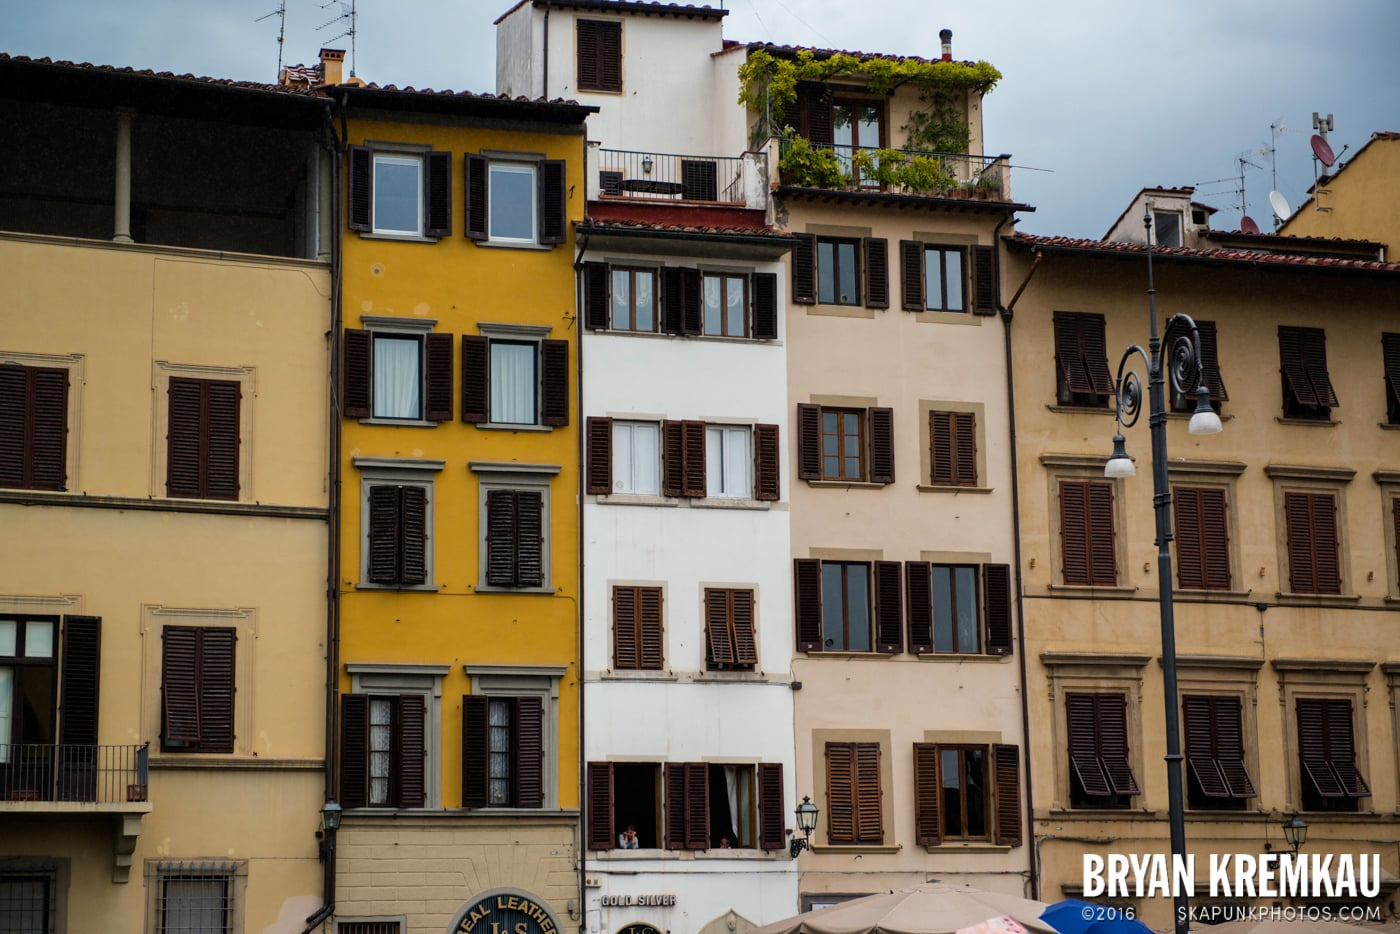 Italy Vacation - Day 7: Florence - 9.15.13 (61)